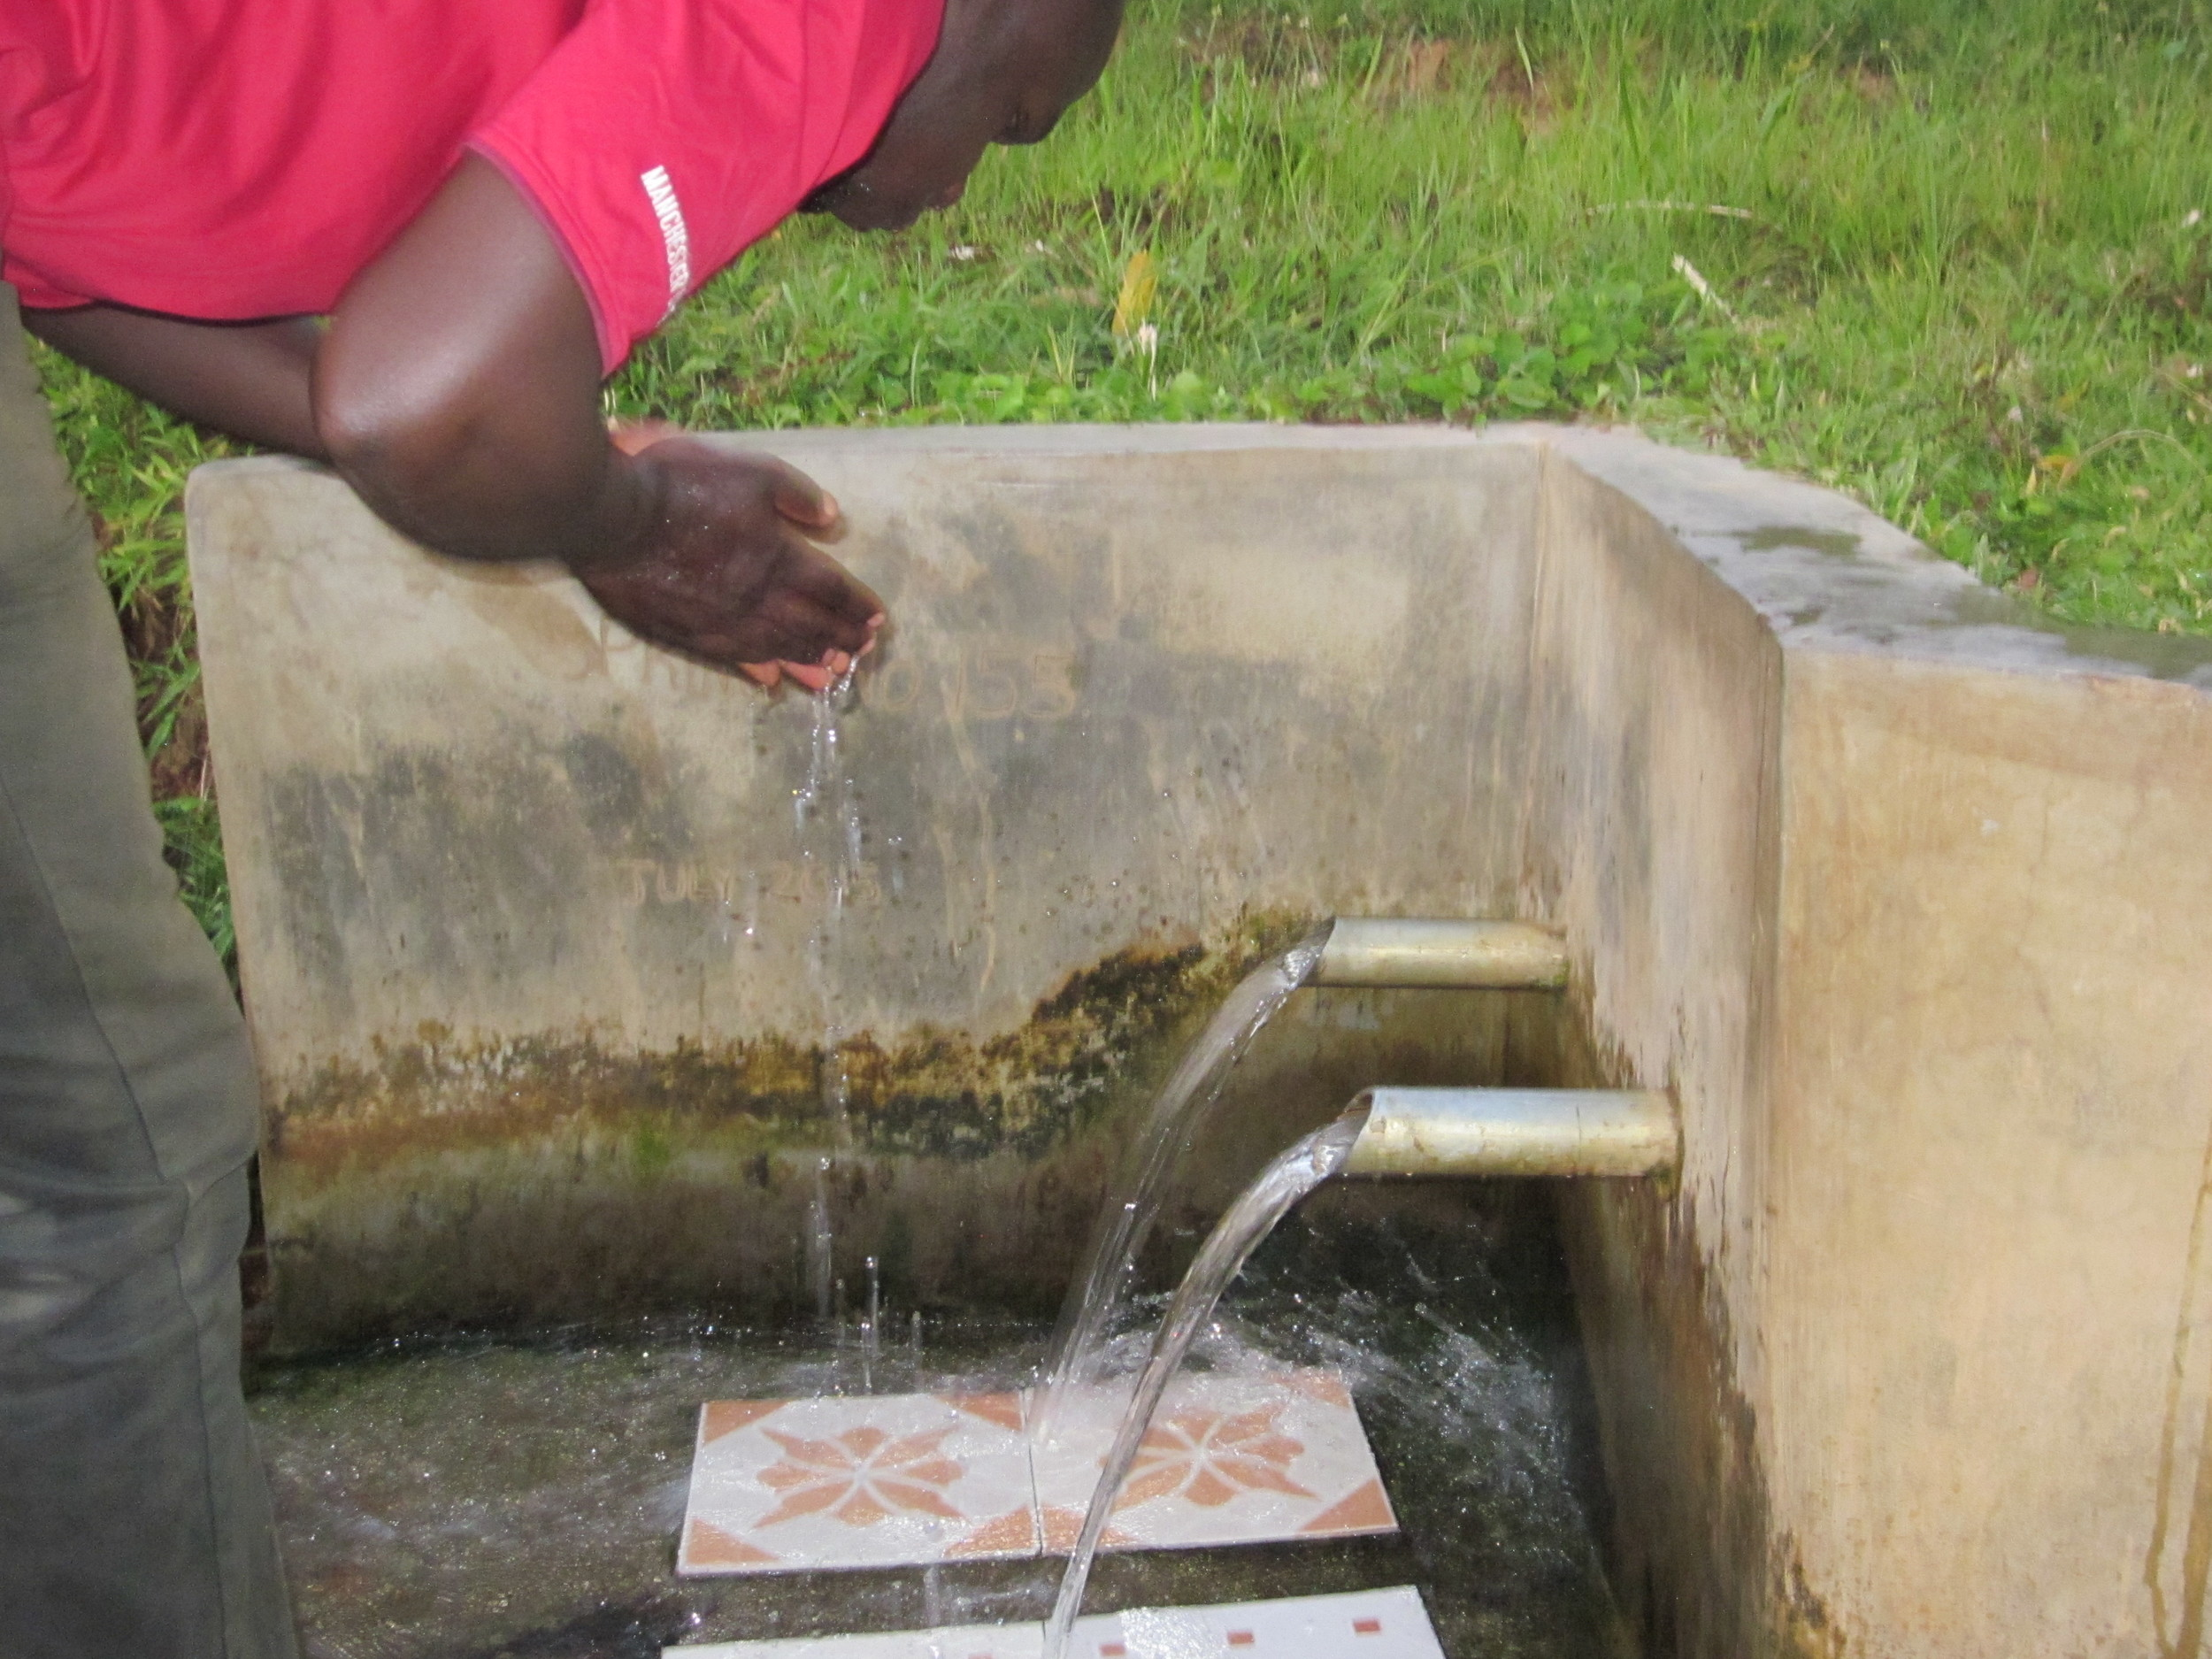 Clean water contributes to proper hygiene